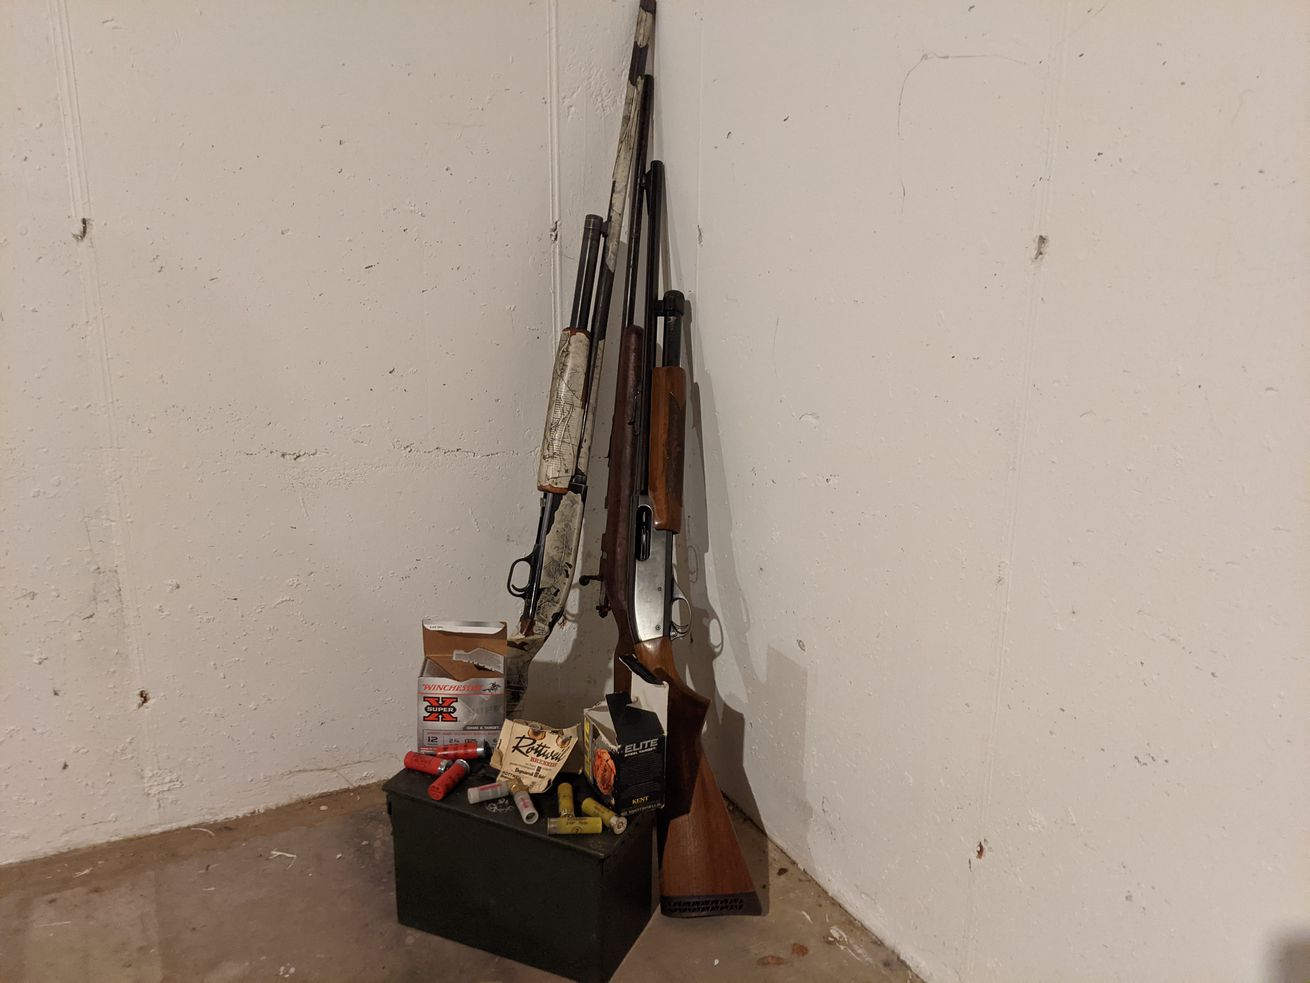 Illinois residents need a Firearm Owner's Identification Card (FOID card) to legally possess firearms or ammunition, such as this still life of a 12-gauge shotgun, a .22 rifle and a 20-gauge shotgun with shotgun shells and slugs atop an ammo box. Credit: Dale Bowman